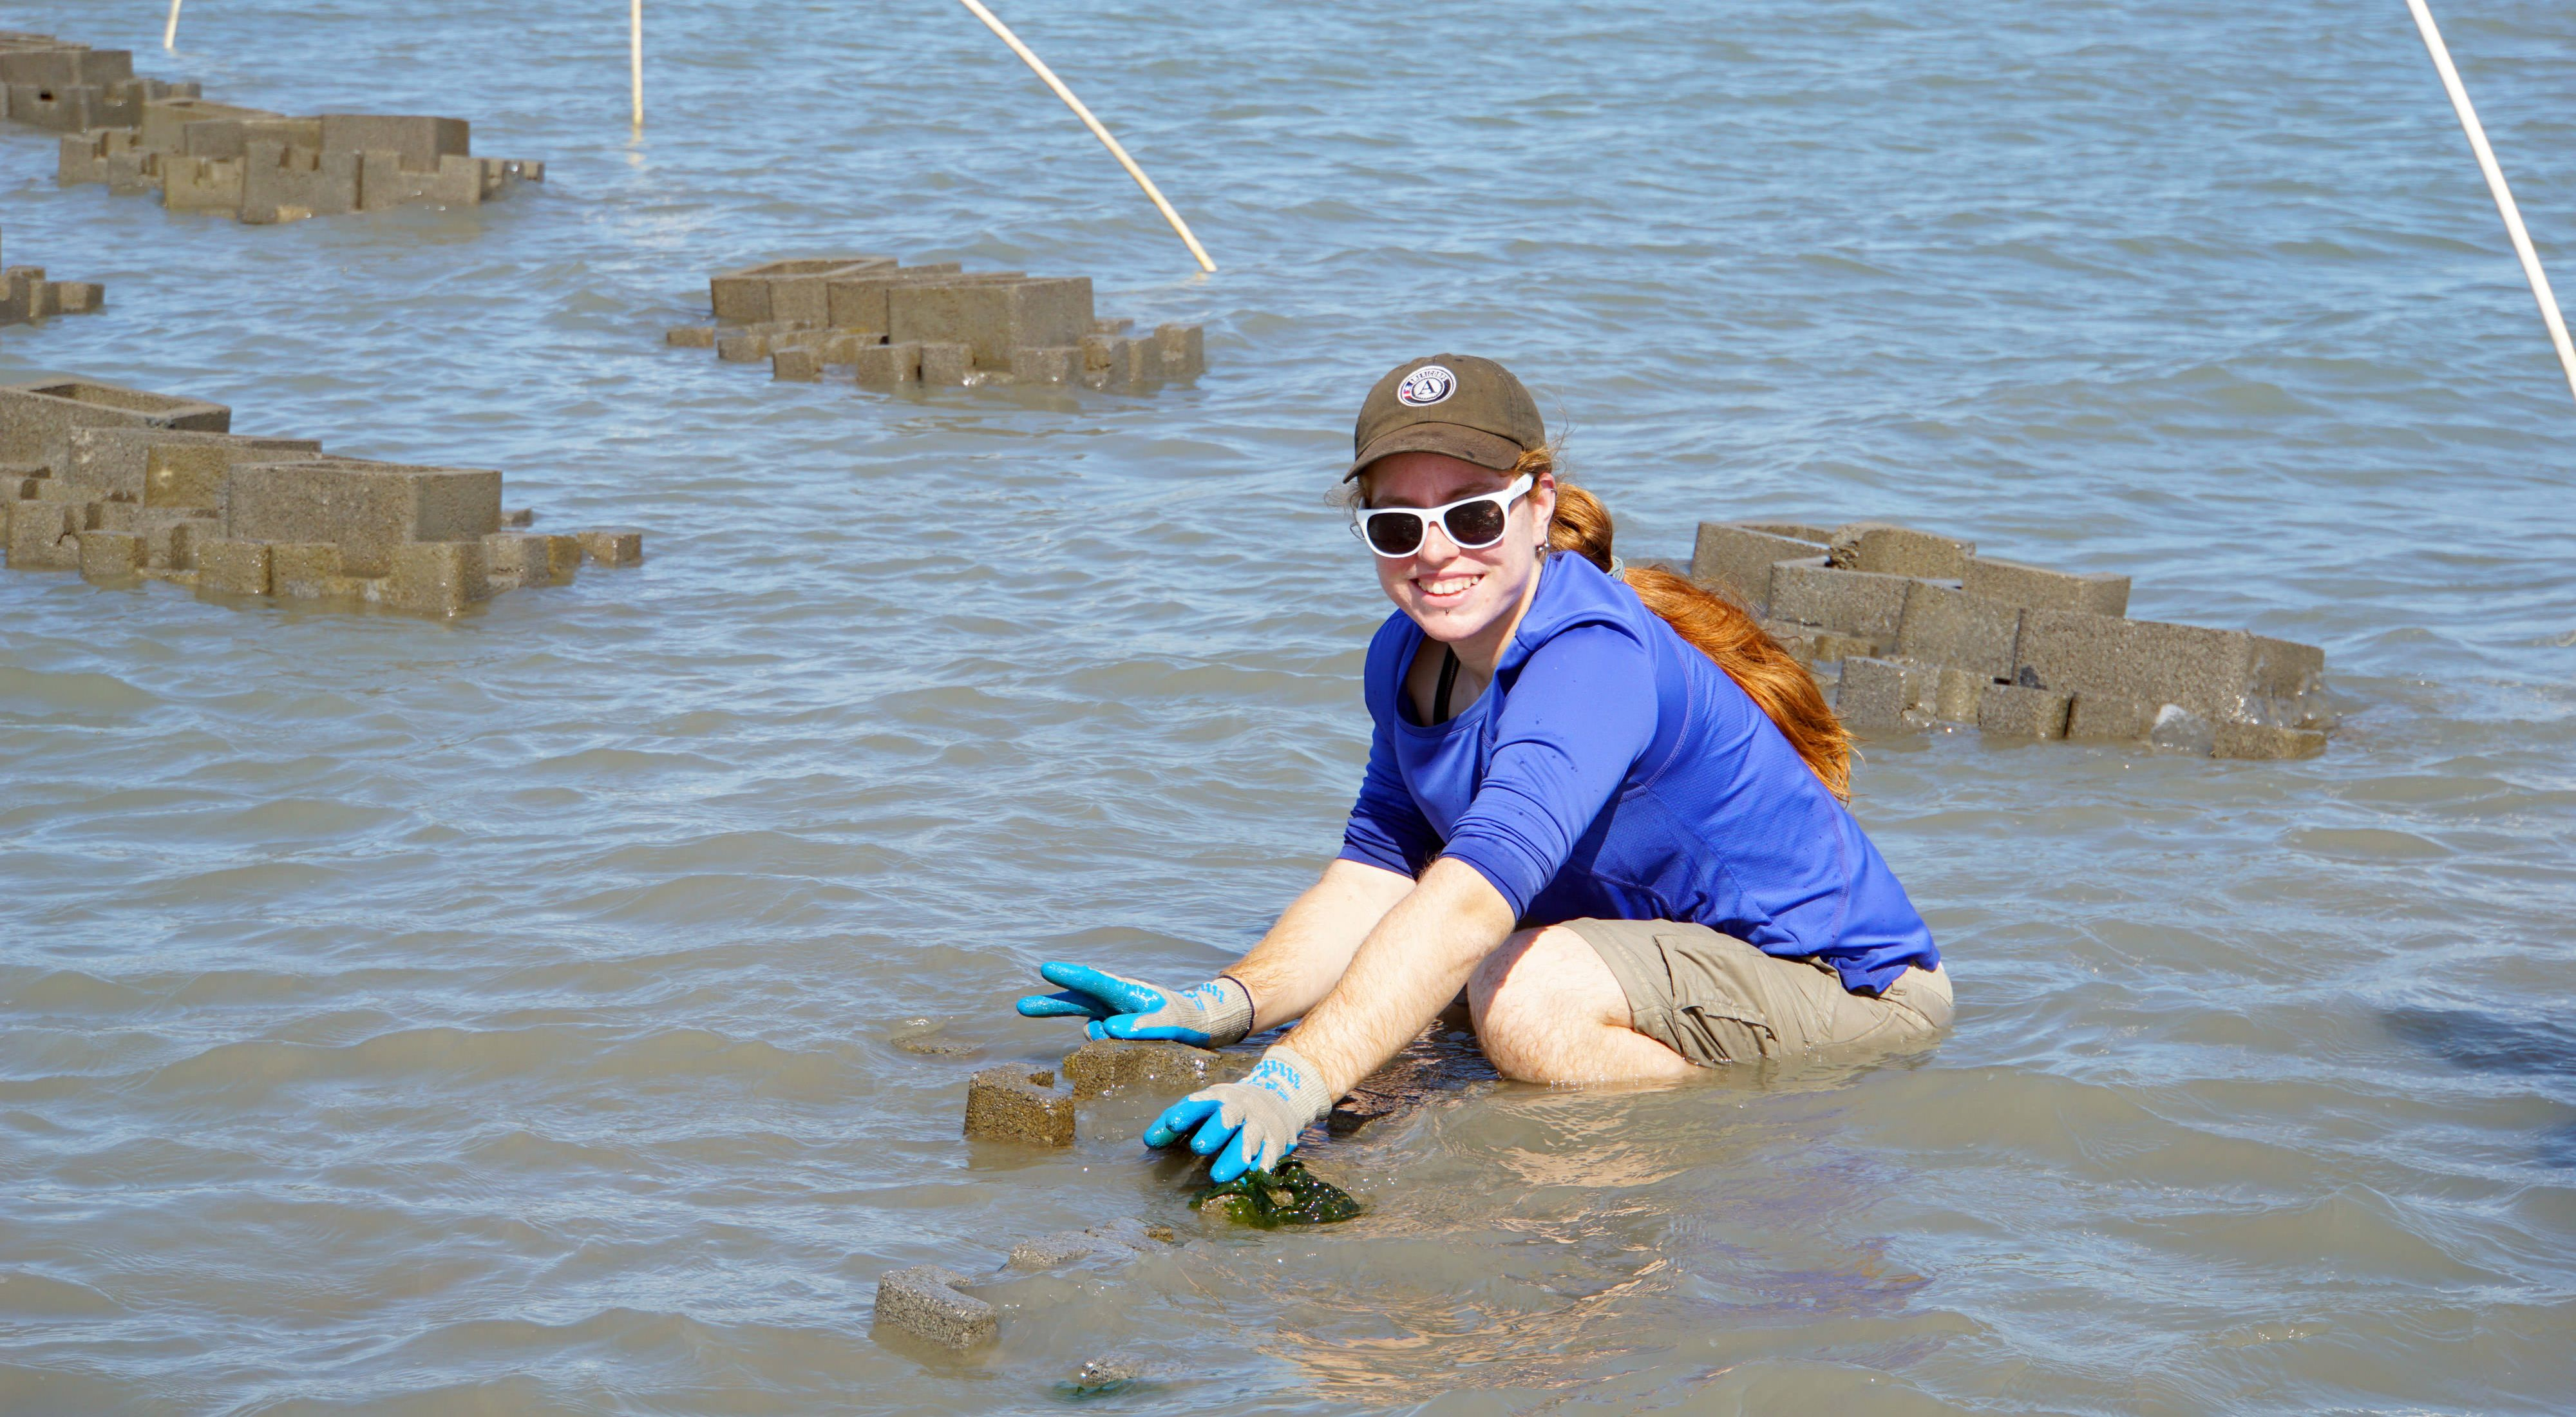 A smiling woman crouches in shallow water near an array of oyster castles, large square blocks of interlocking concrete used to build oyster reefs. The reefs are placed in narrow clusters behind her.